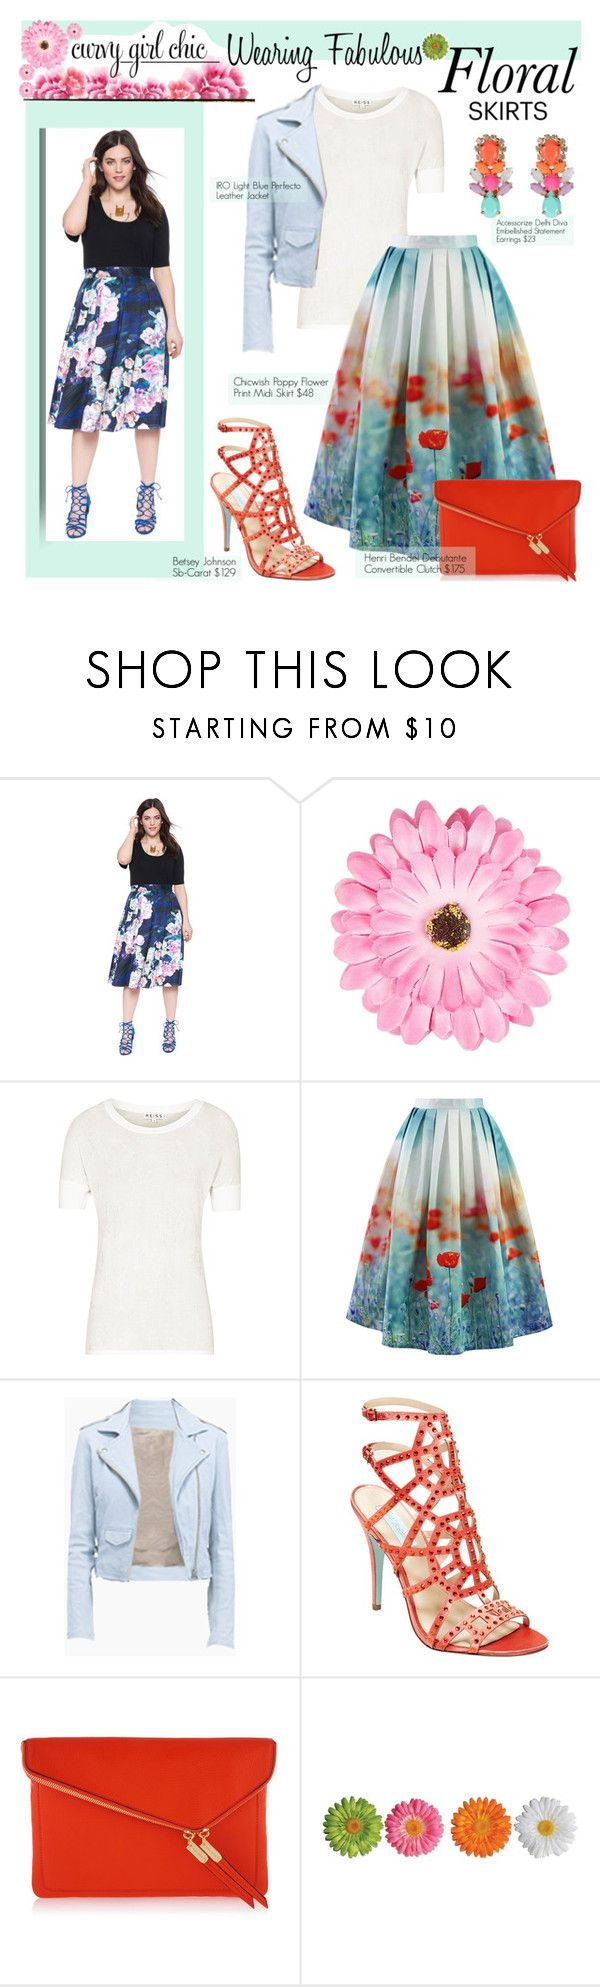 """""""Floral Skirts with Curvy Girl Chic"""" by girlsboysclosets ❤ liked on Polyvore featuring NLY Accessories, Reiss, Chicwish, Betsey Johnson, Henri Bendel, Accessorize, contestentry and PVCurvyChic"""